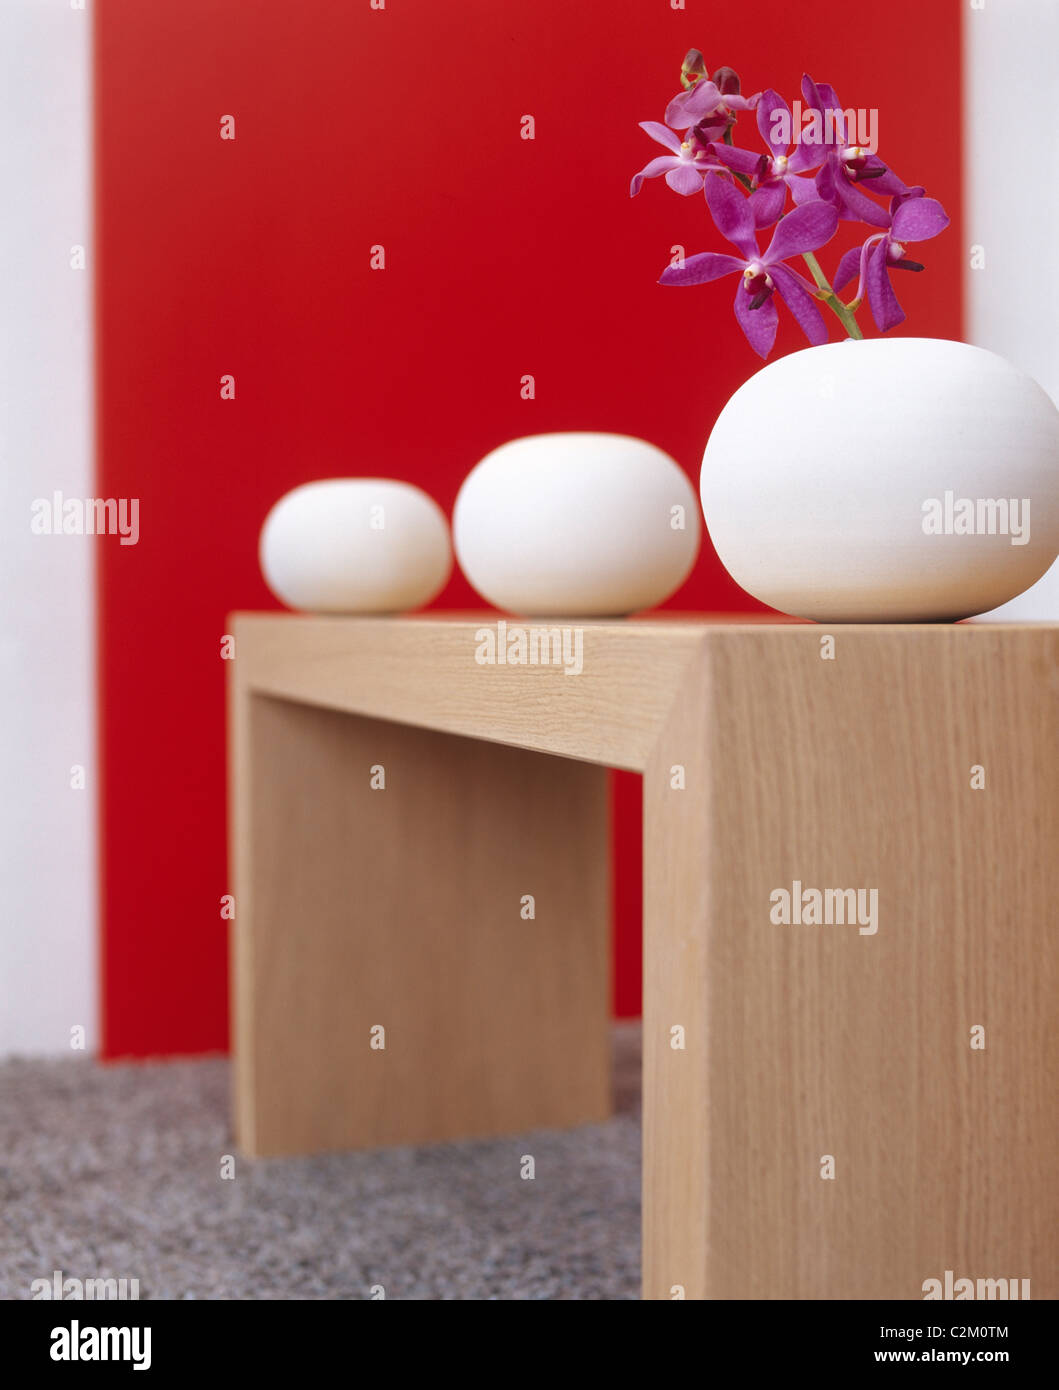 Contemporary Red Interior with Wooden Table and White Vases. - Stock Image